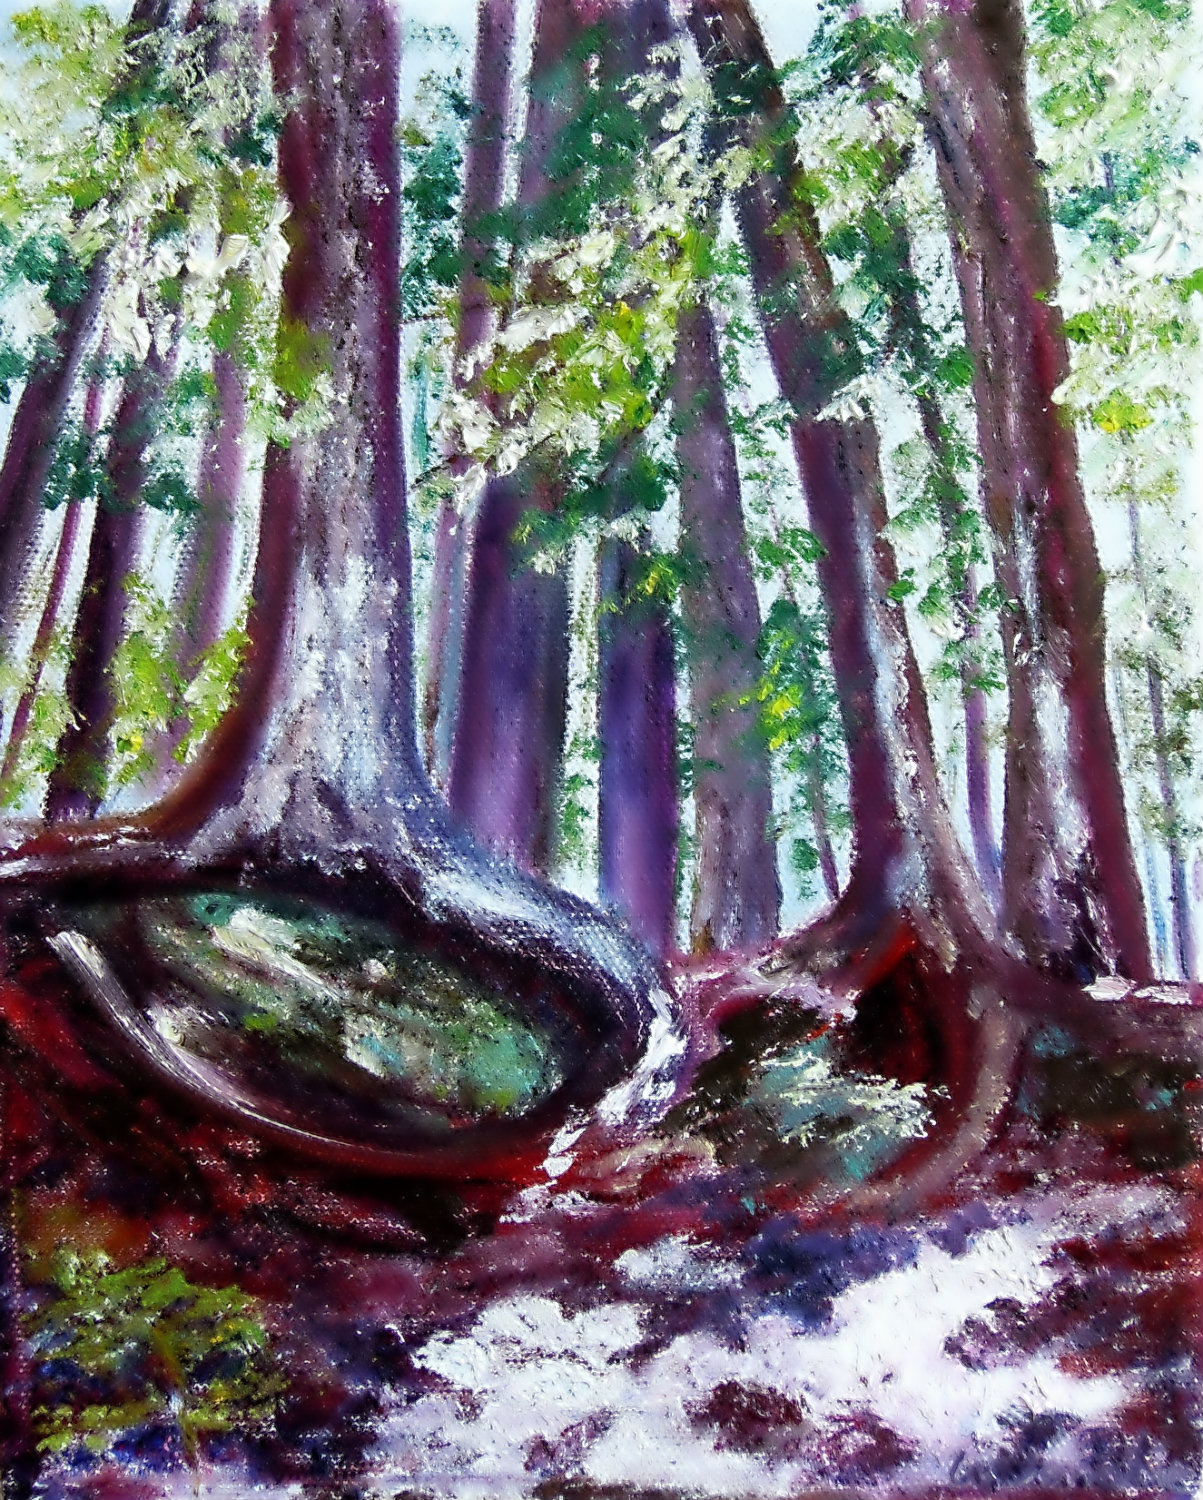 3637 - Firmly Rooted Series - Enchantment #1, Oil on Canvas, 10 x 8 Copyright Wendie Donabie